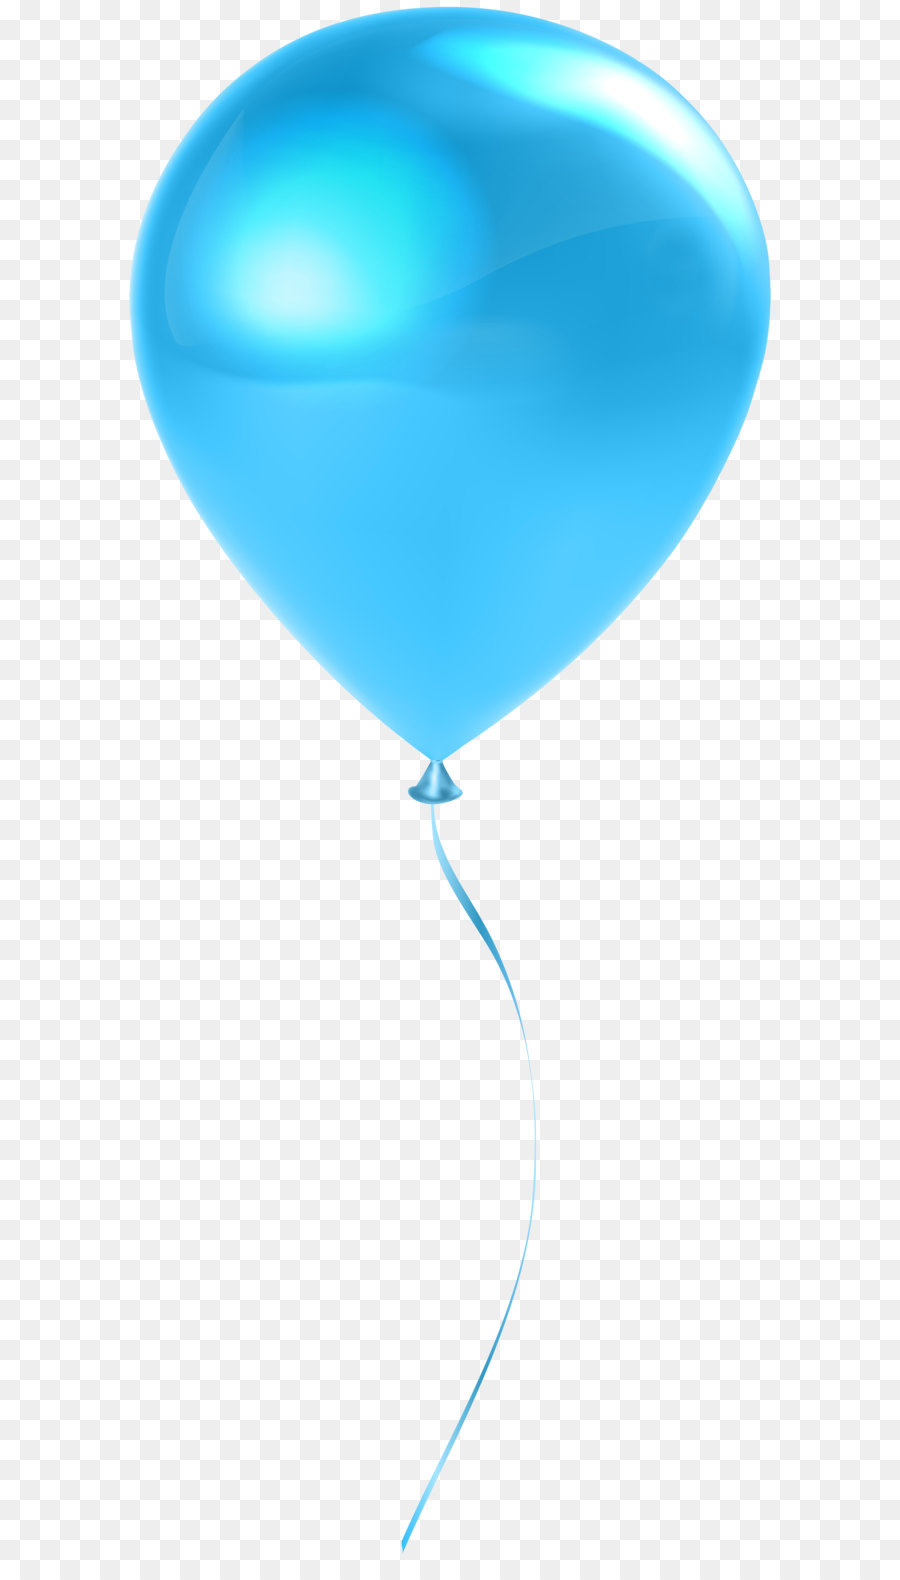 blue sky balloon single sky blue balloon transparent clip art png rh kisspng com free balloon clipart to cut and paste free balloon clipart to cut and paste